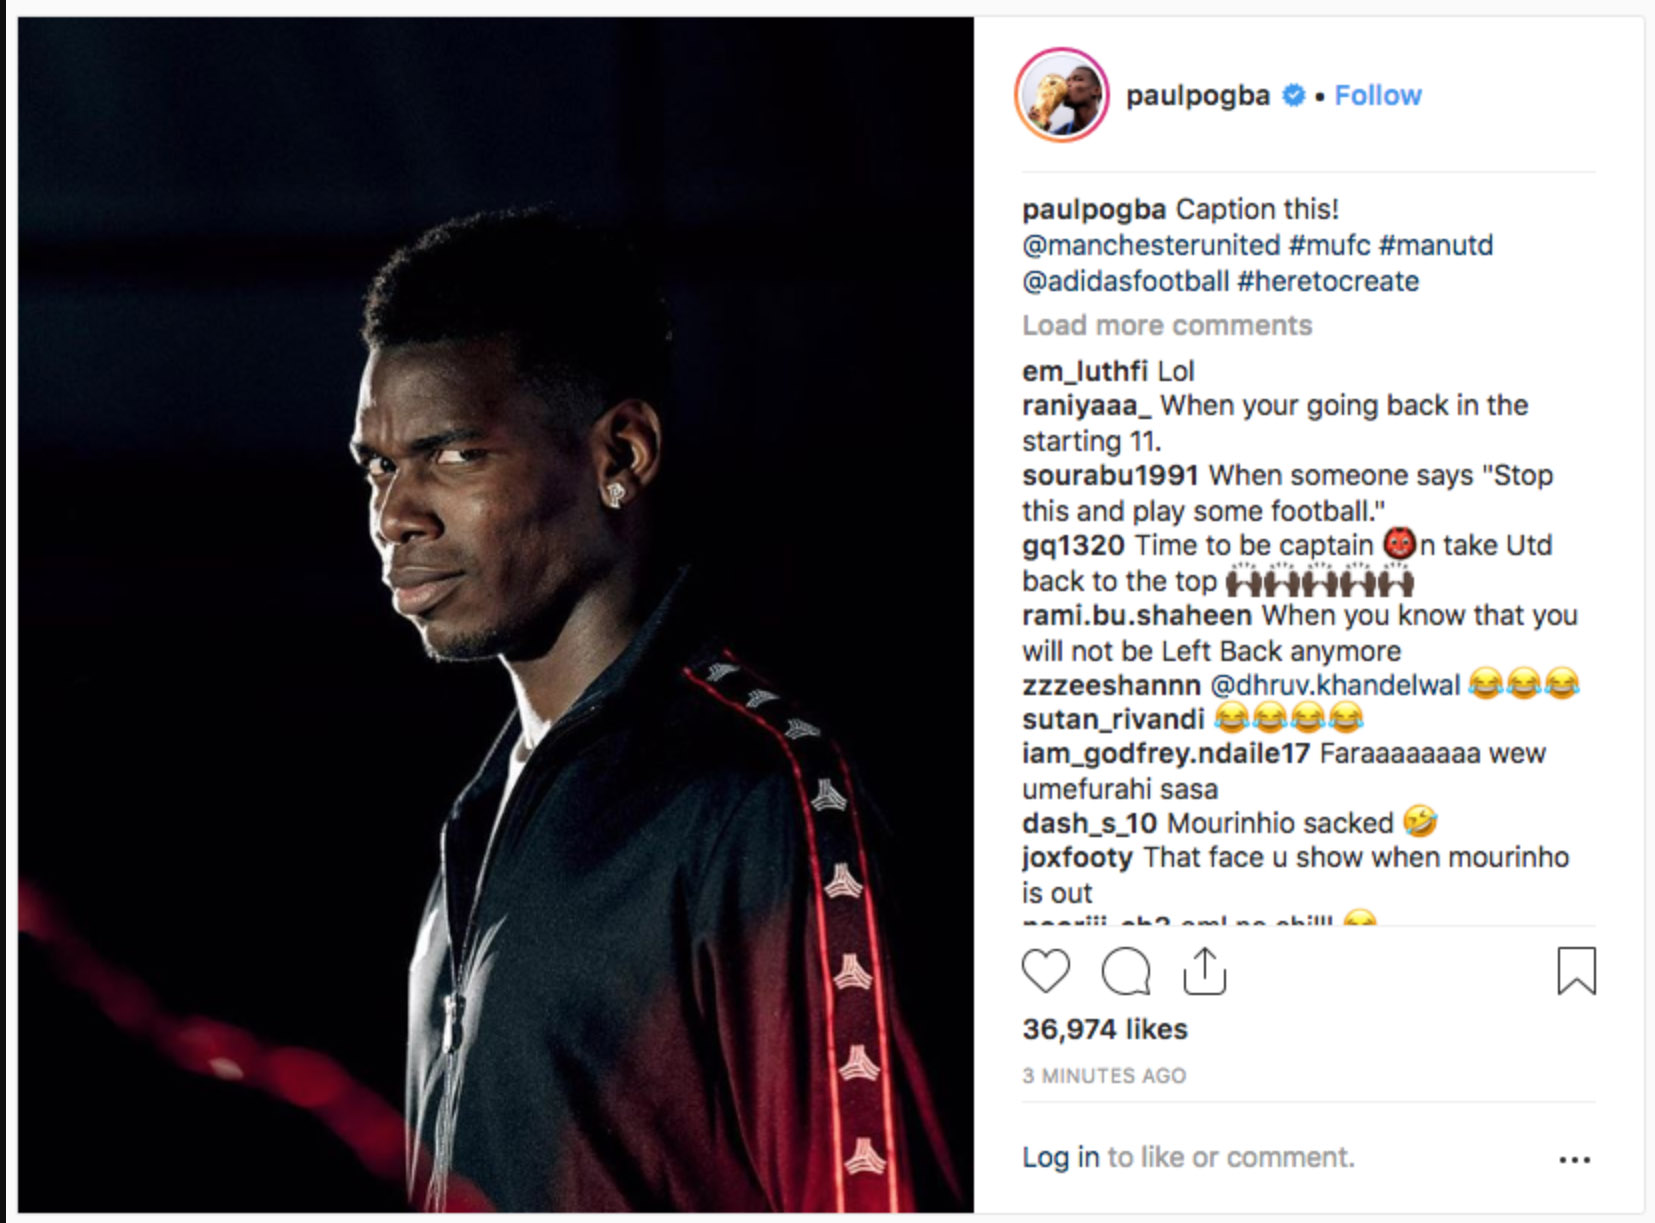 paul pogba instagram ep167fypl6py1angtc10tgkyg - Pogba Post-Delete Cryptic Tweet After Mourinho Sacking As Manchester United Manager